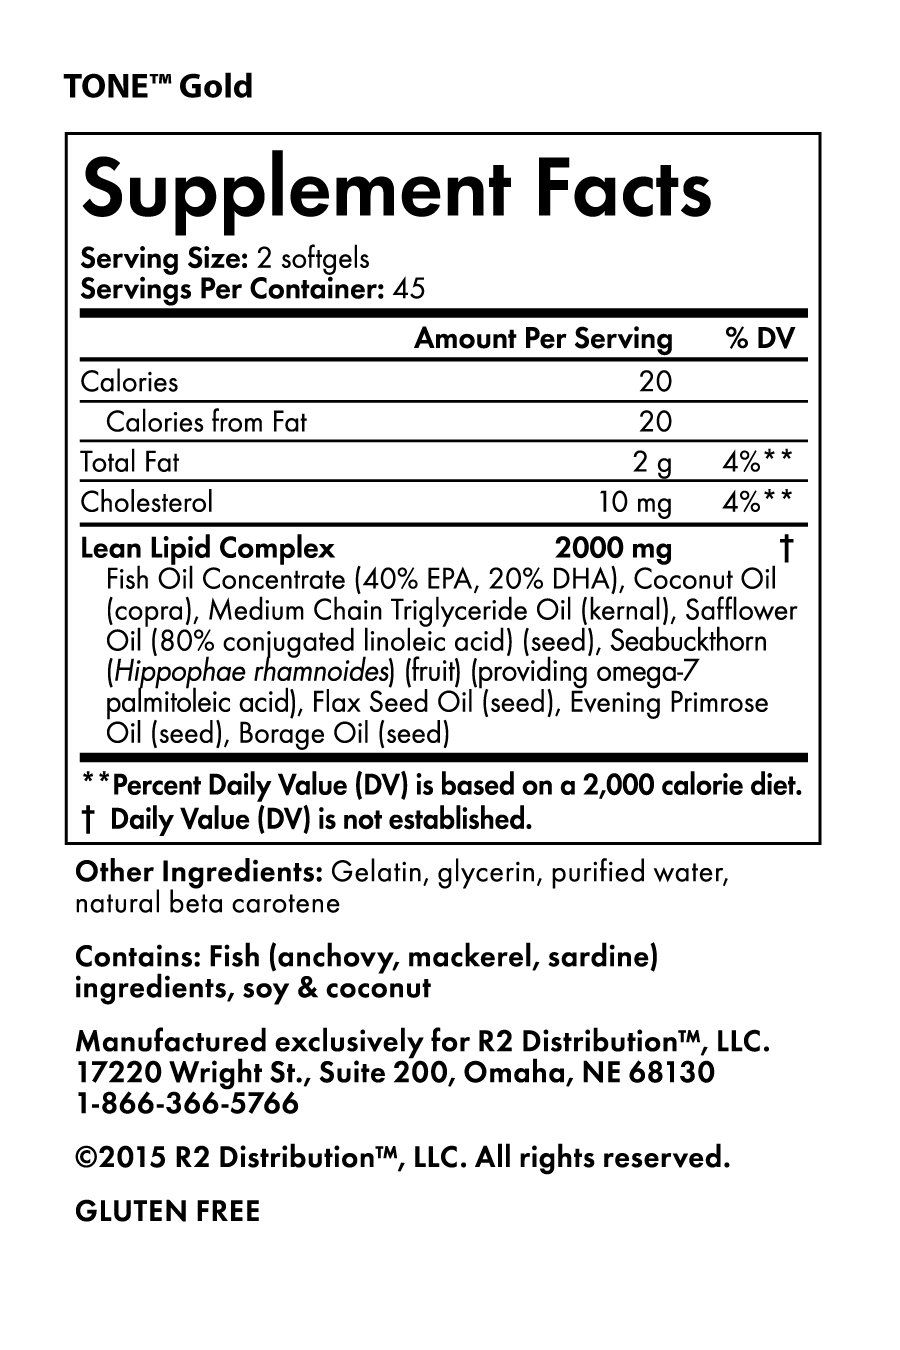 Tone™ Gold -Nutrition Facts